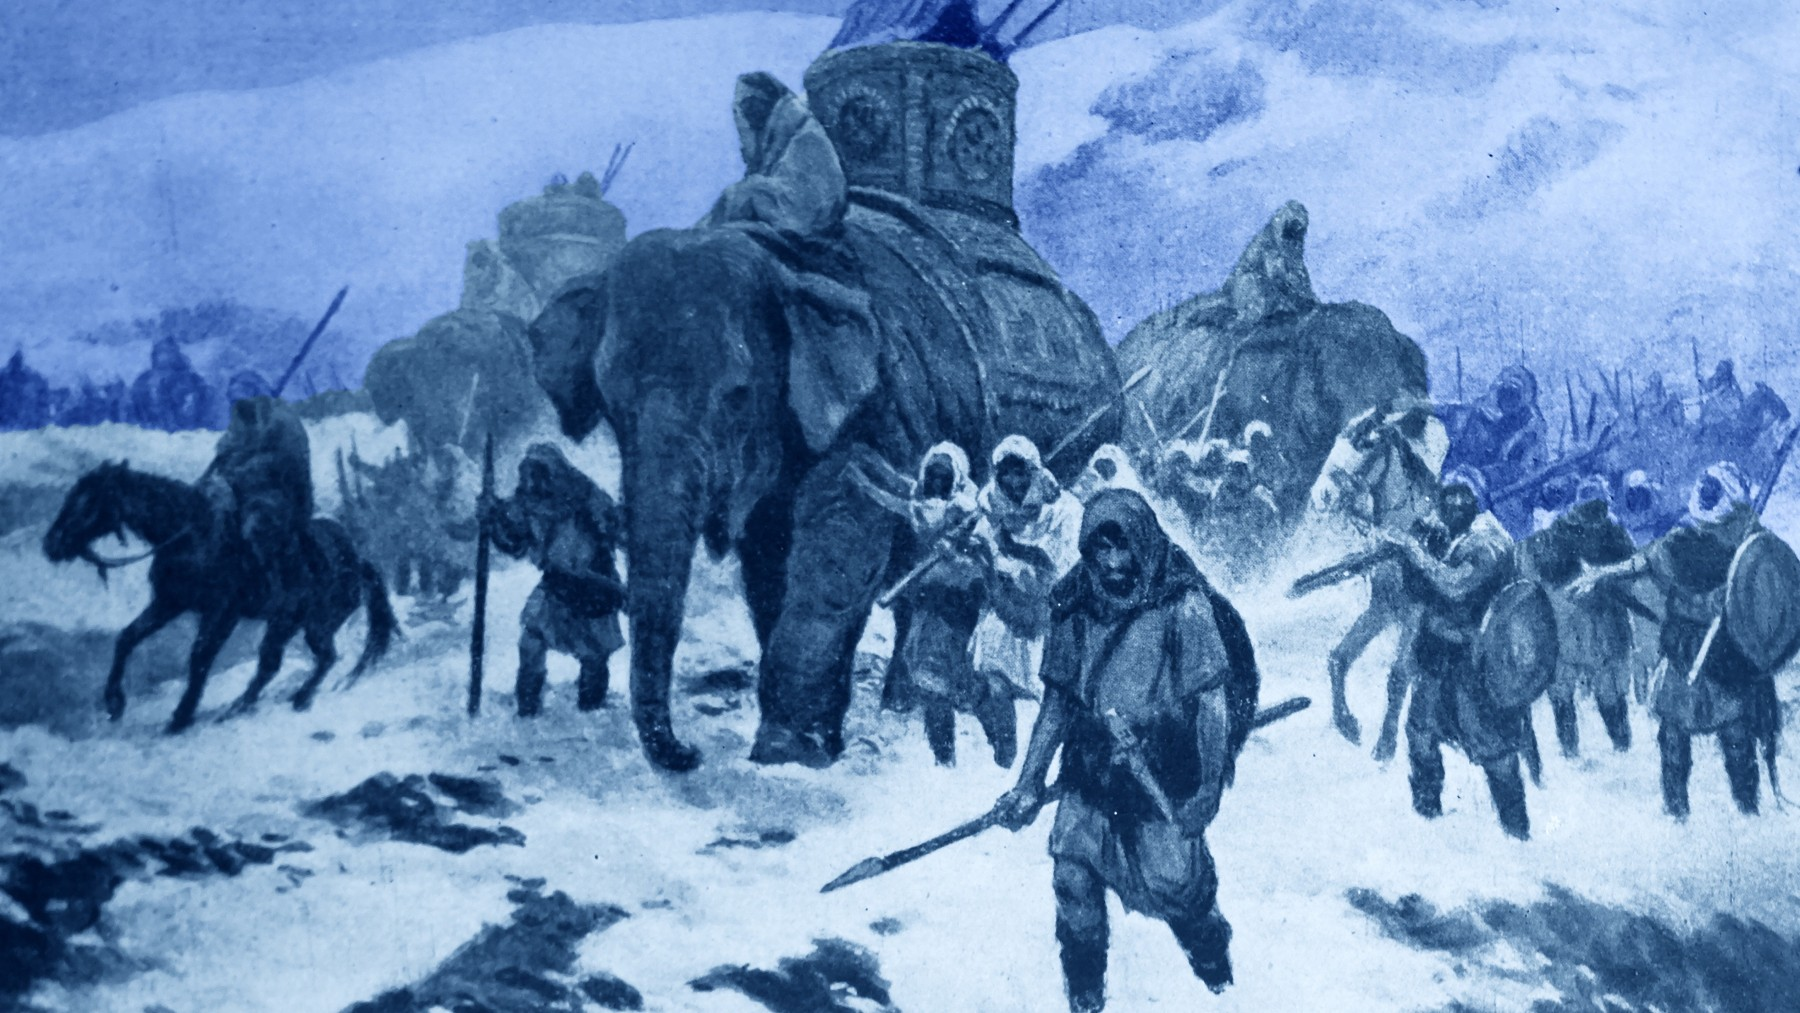 Hannibal, Punic Carthaginian military commander, marching his army which included elephants from Iberia over the Pyrenees and the Alps into Italy. (Universal History Archive/UIG via Getty Images)